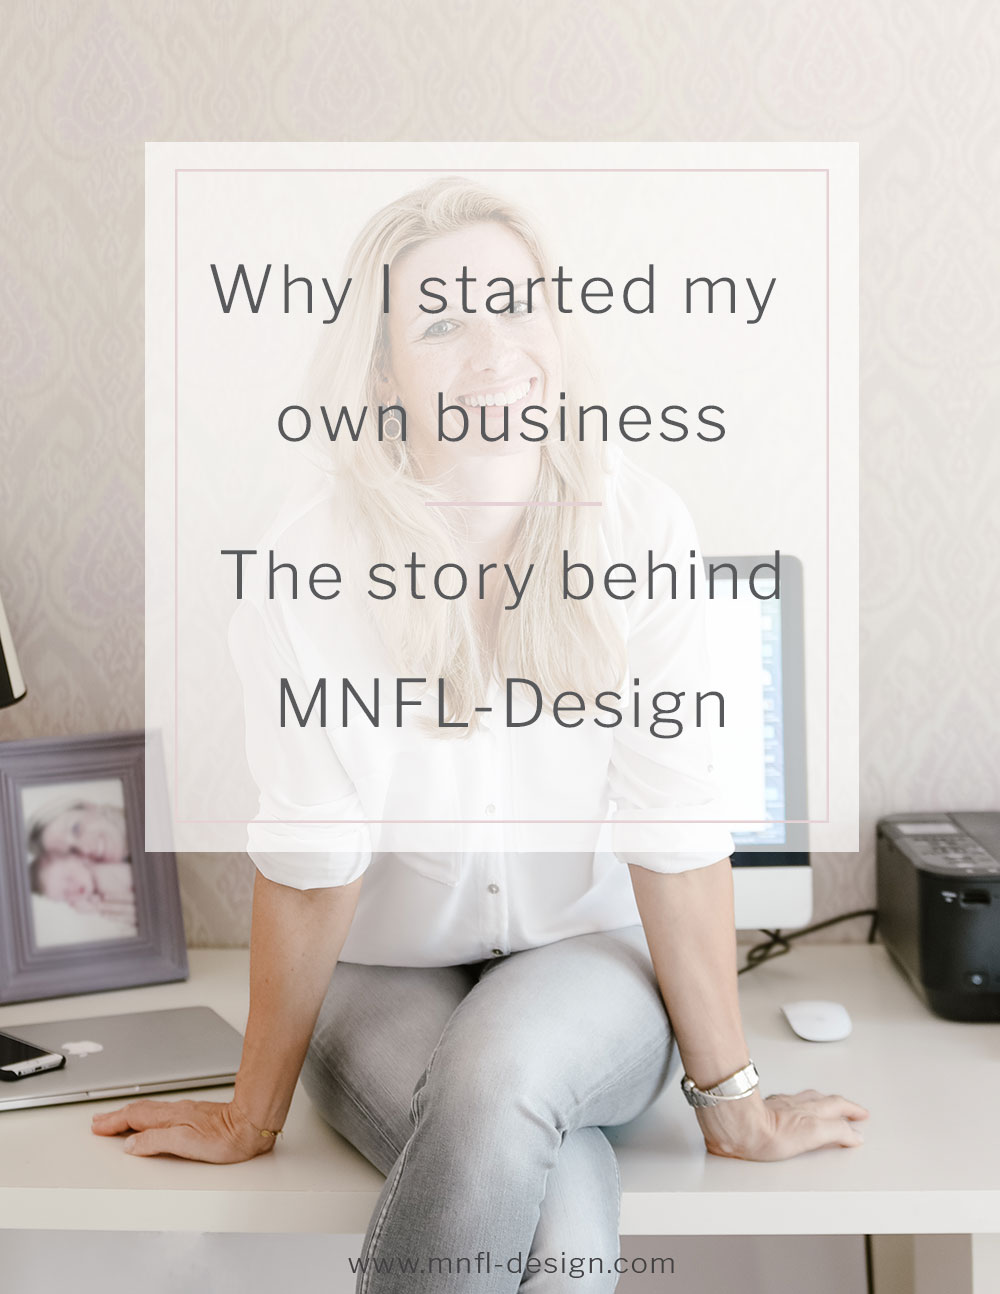 Why-I-started-my-own-business-the-story-behind-MNFL-Design.jpg